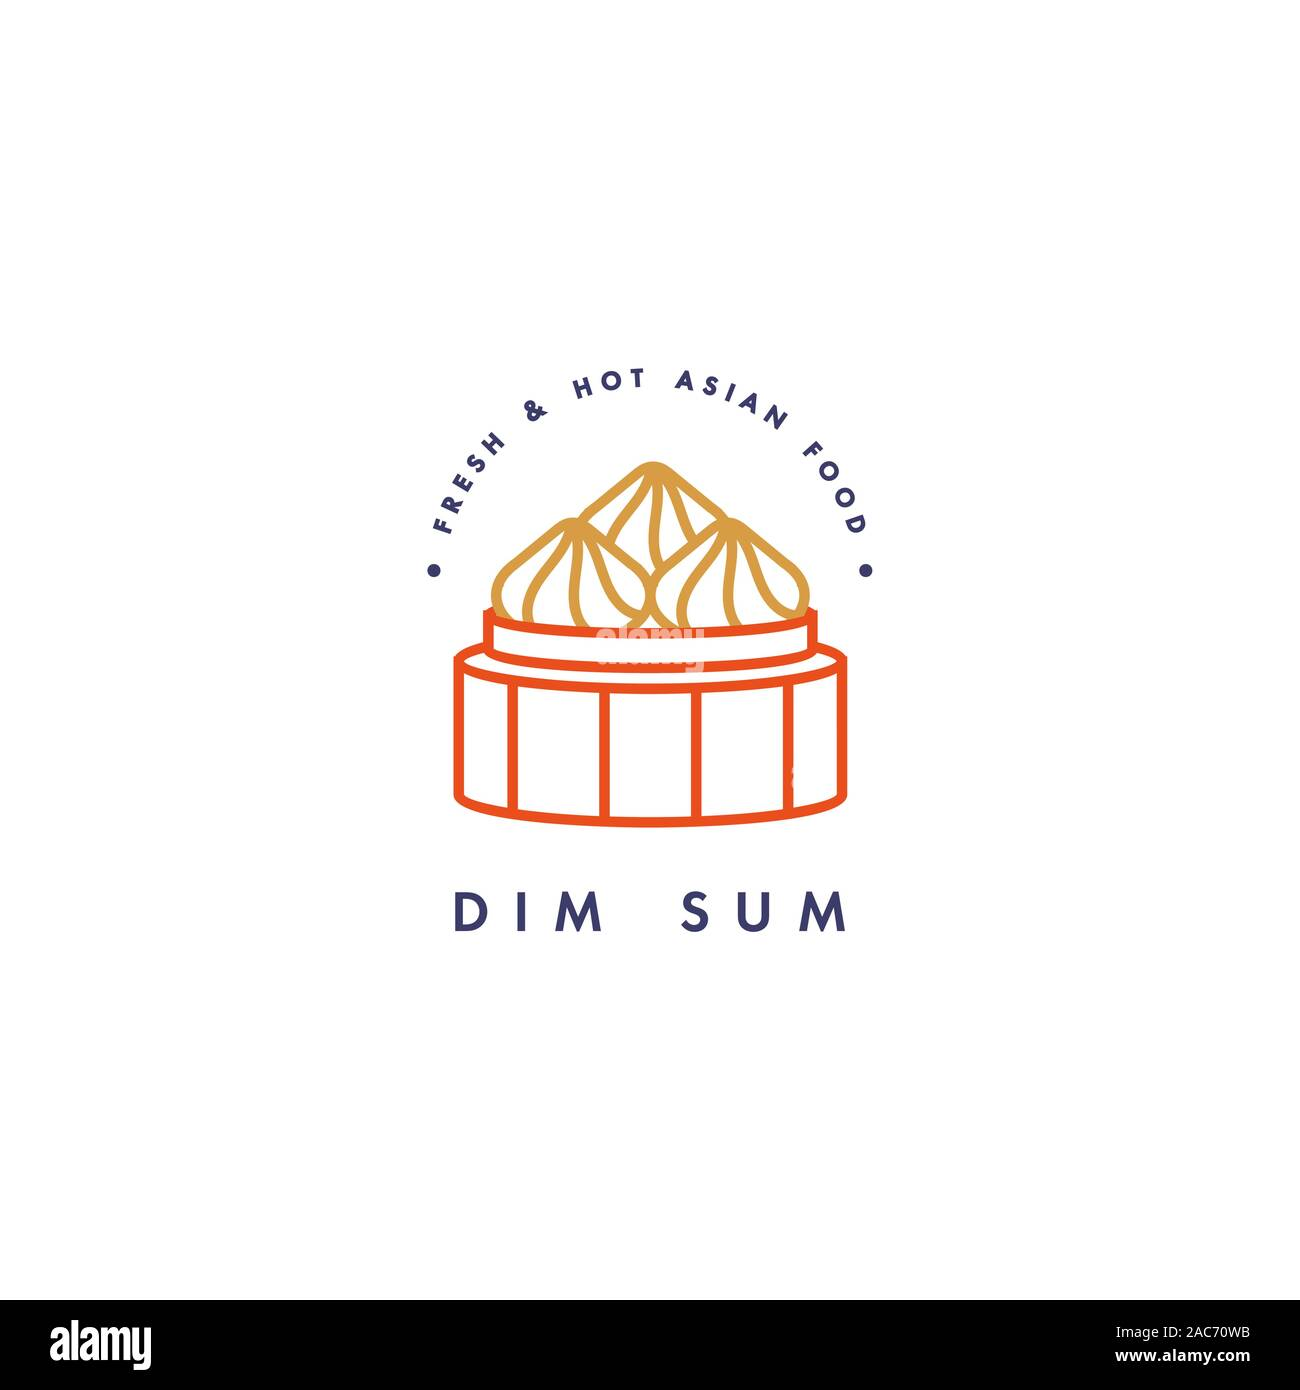 vector logo design template and emblem or badge asian food dim sum linear logos stock vector image art alamy https www alamy com vector logo design template and emblem or badge asian food dim sum linear logos image334527239 html